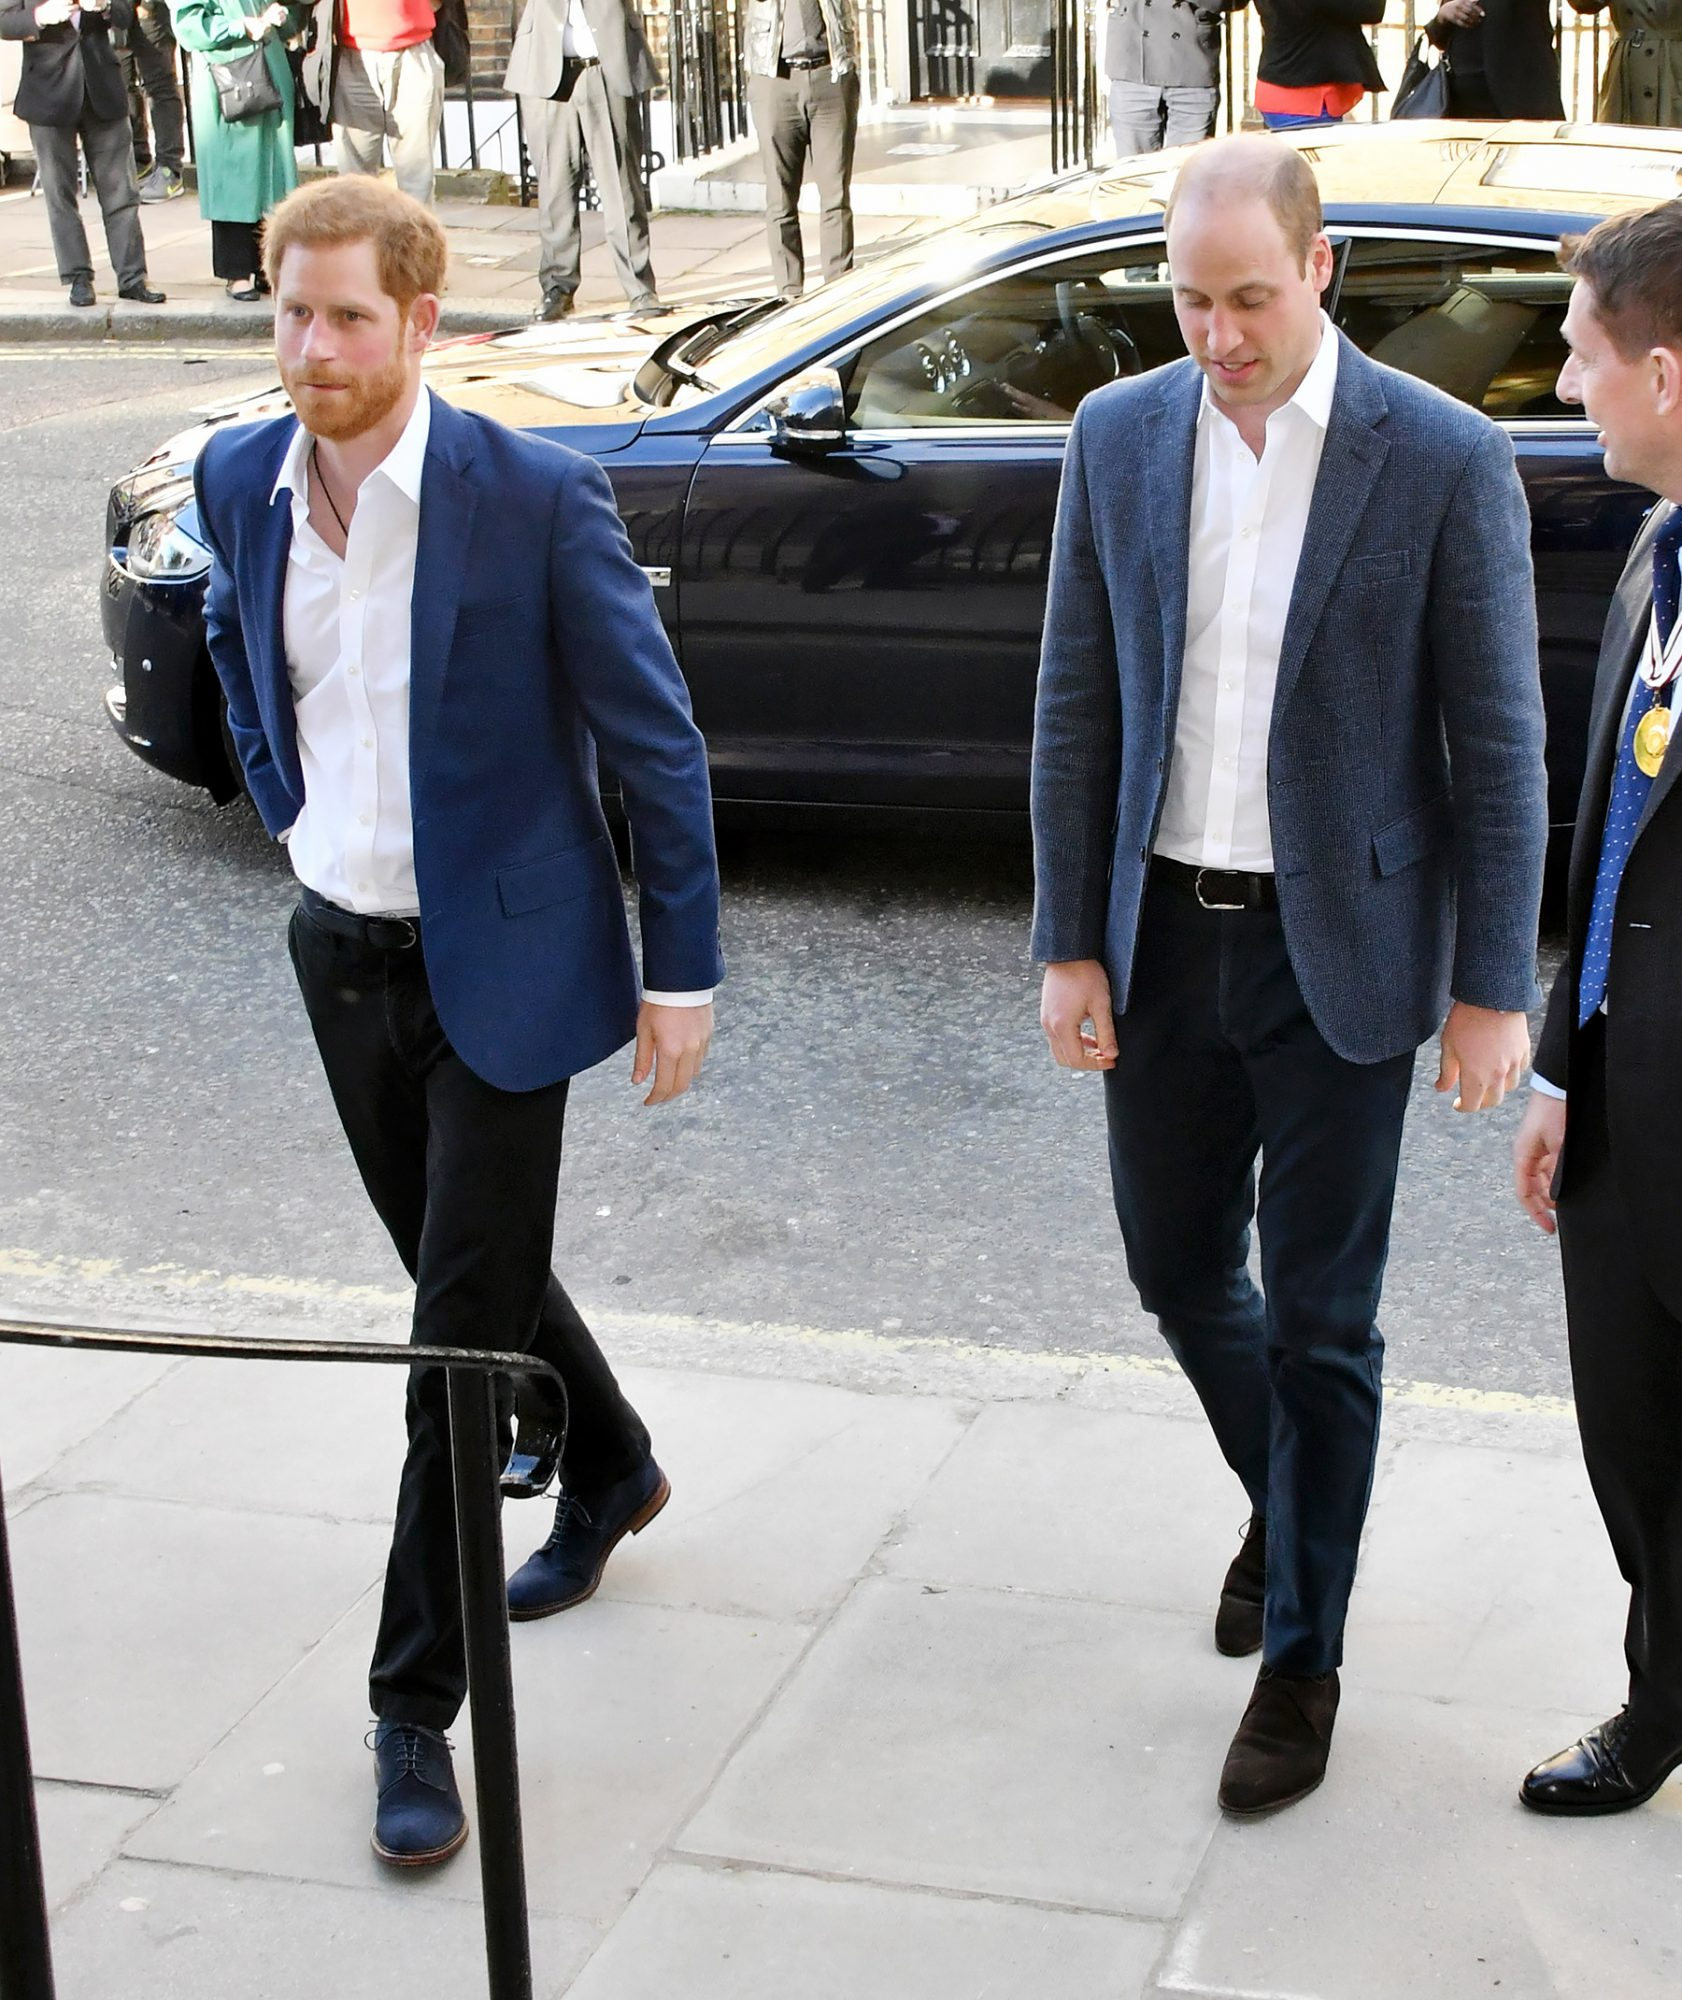 Prince Harry opens the Greenhouse Sports Centre, London, UK - 26 Apr 2018